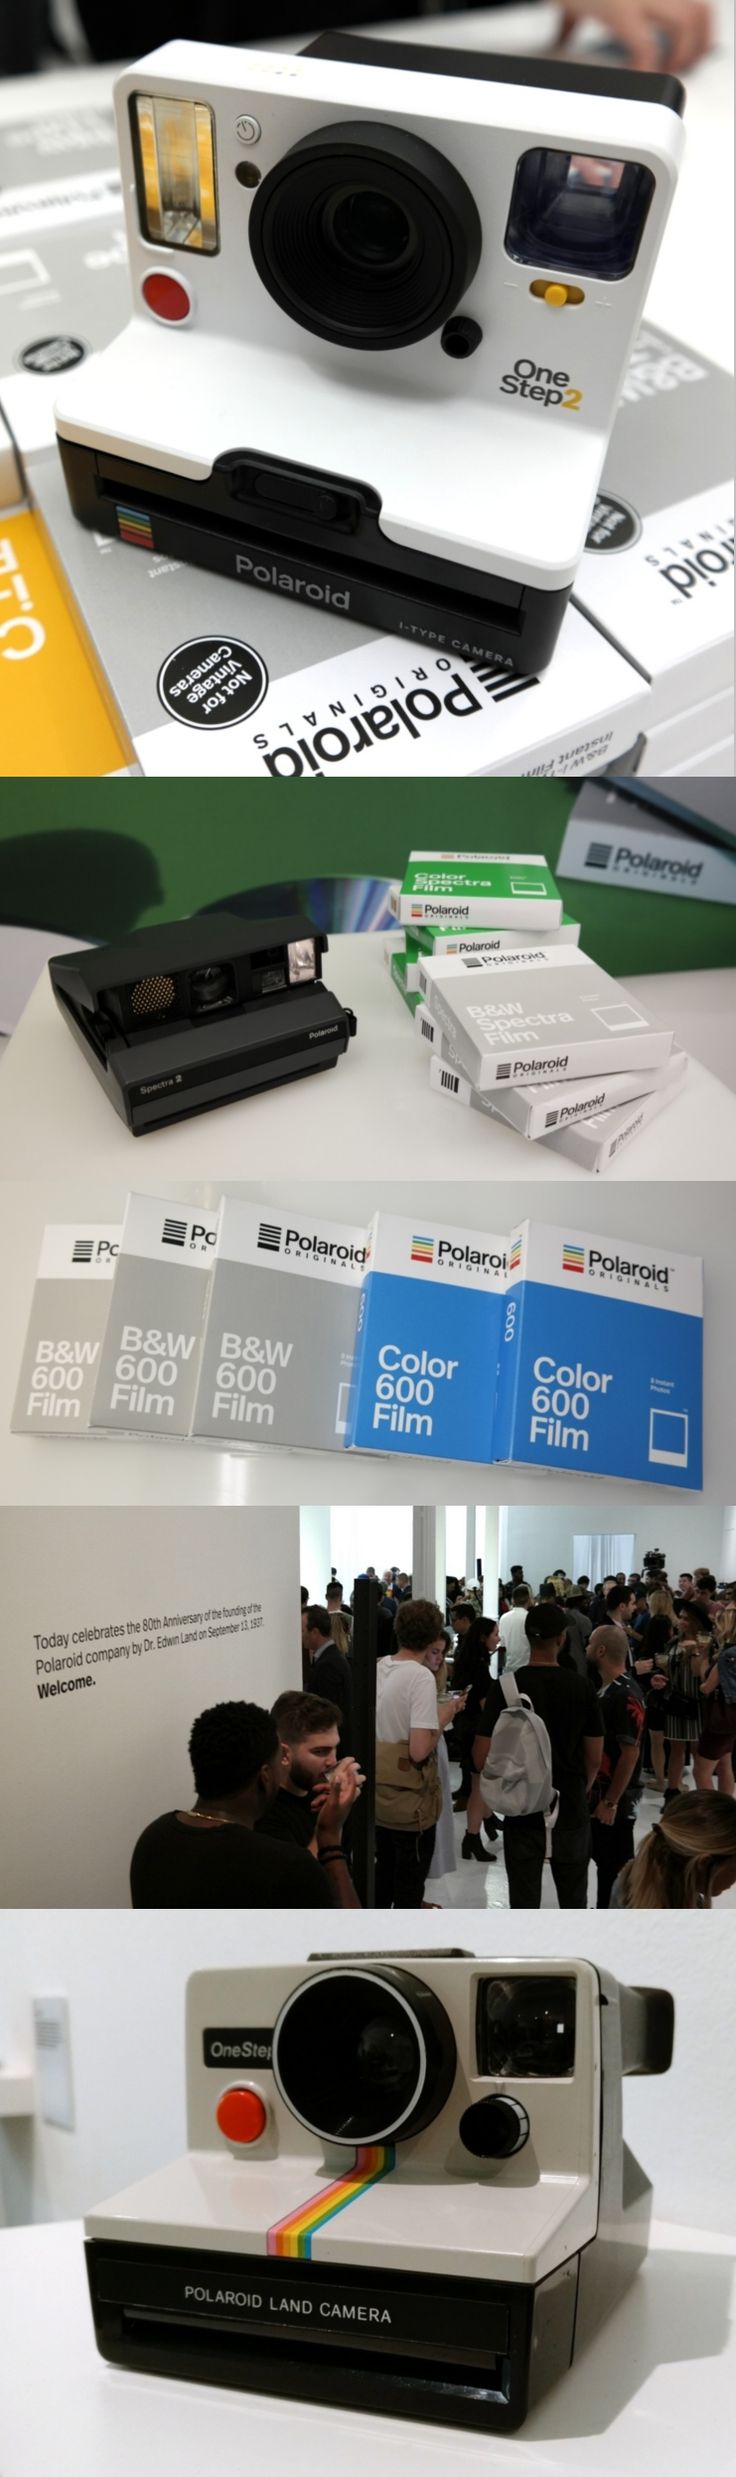 They're baaack! The new Polaroid OneStep 2 from Polaroid Originals marks the return of Polaroid-brand instant film cameras for the first time since 2003. The $100 OneStep 2, available Oct. 16, adds a flash, a 60-day internal battery and an improved lens to the design of the iconic OneStep, which debuted in 1977. Also available: Refurbished classic @Polaroid cameras like the 600, SX-70 and Spectra. Sept. 13 marked the 80th anniversary of Polaroid, founded by Edward Land. #80yearsofpolaroid